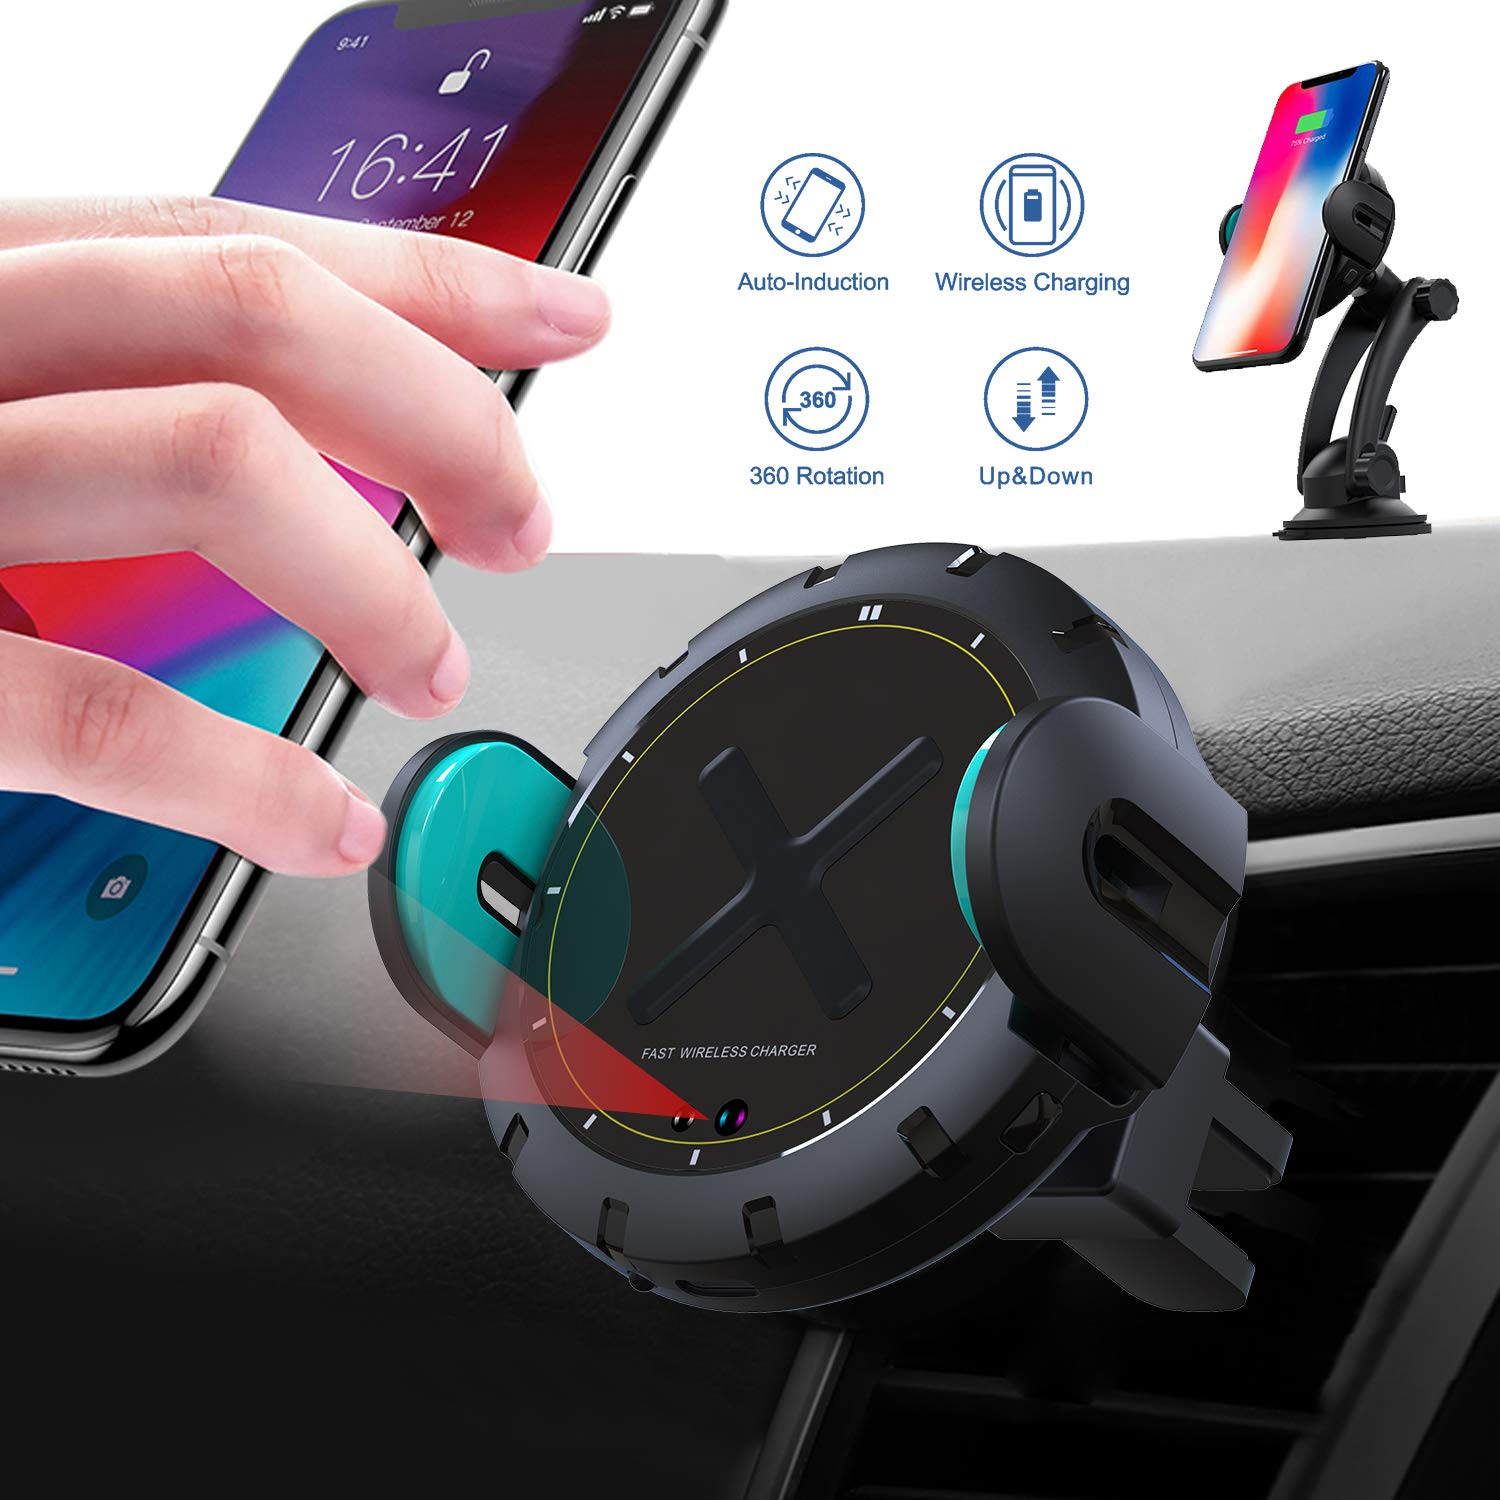 Wireless Car Charger Mount, [2019 Edition] KOAKUMA Auto-Clamping QI Fast Charging Car Mount Dashboard Air Vent Phone Holder Compatible iPhone Xs Max/XS/XR/X/8/8 Plus, Samsung S10/S10+/S9/S9+/Note9